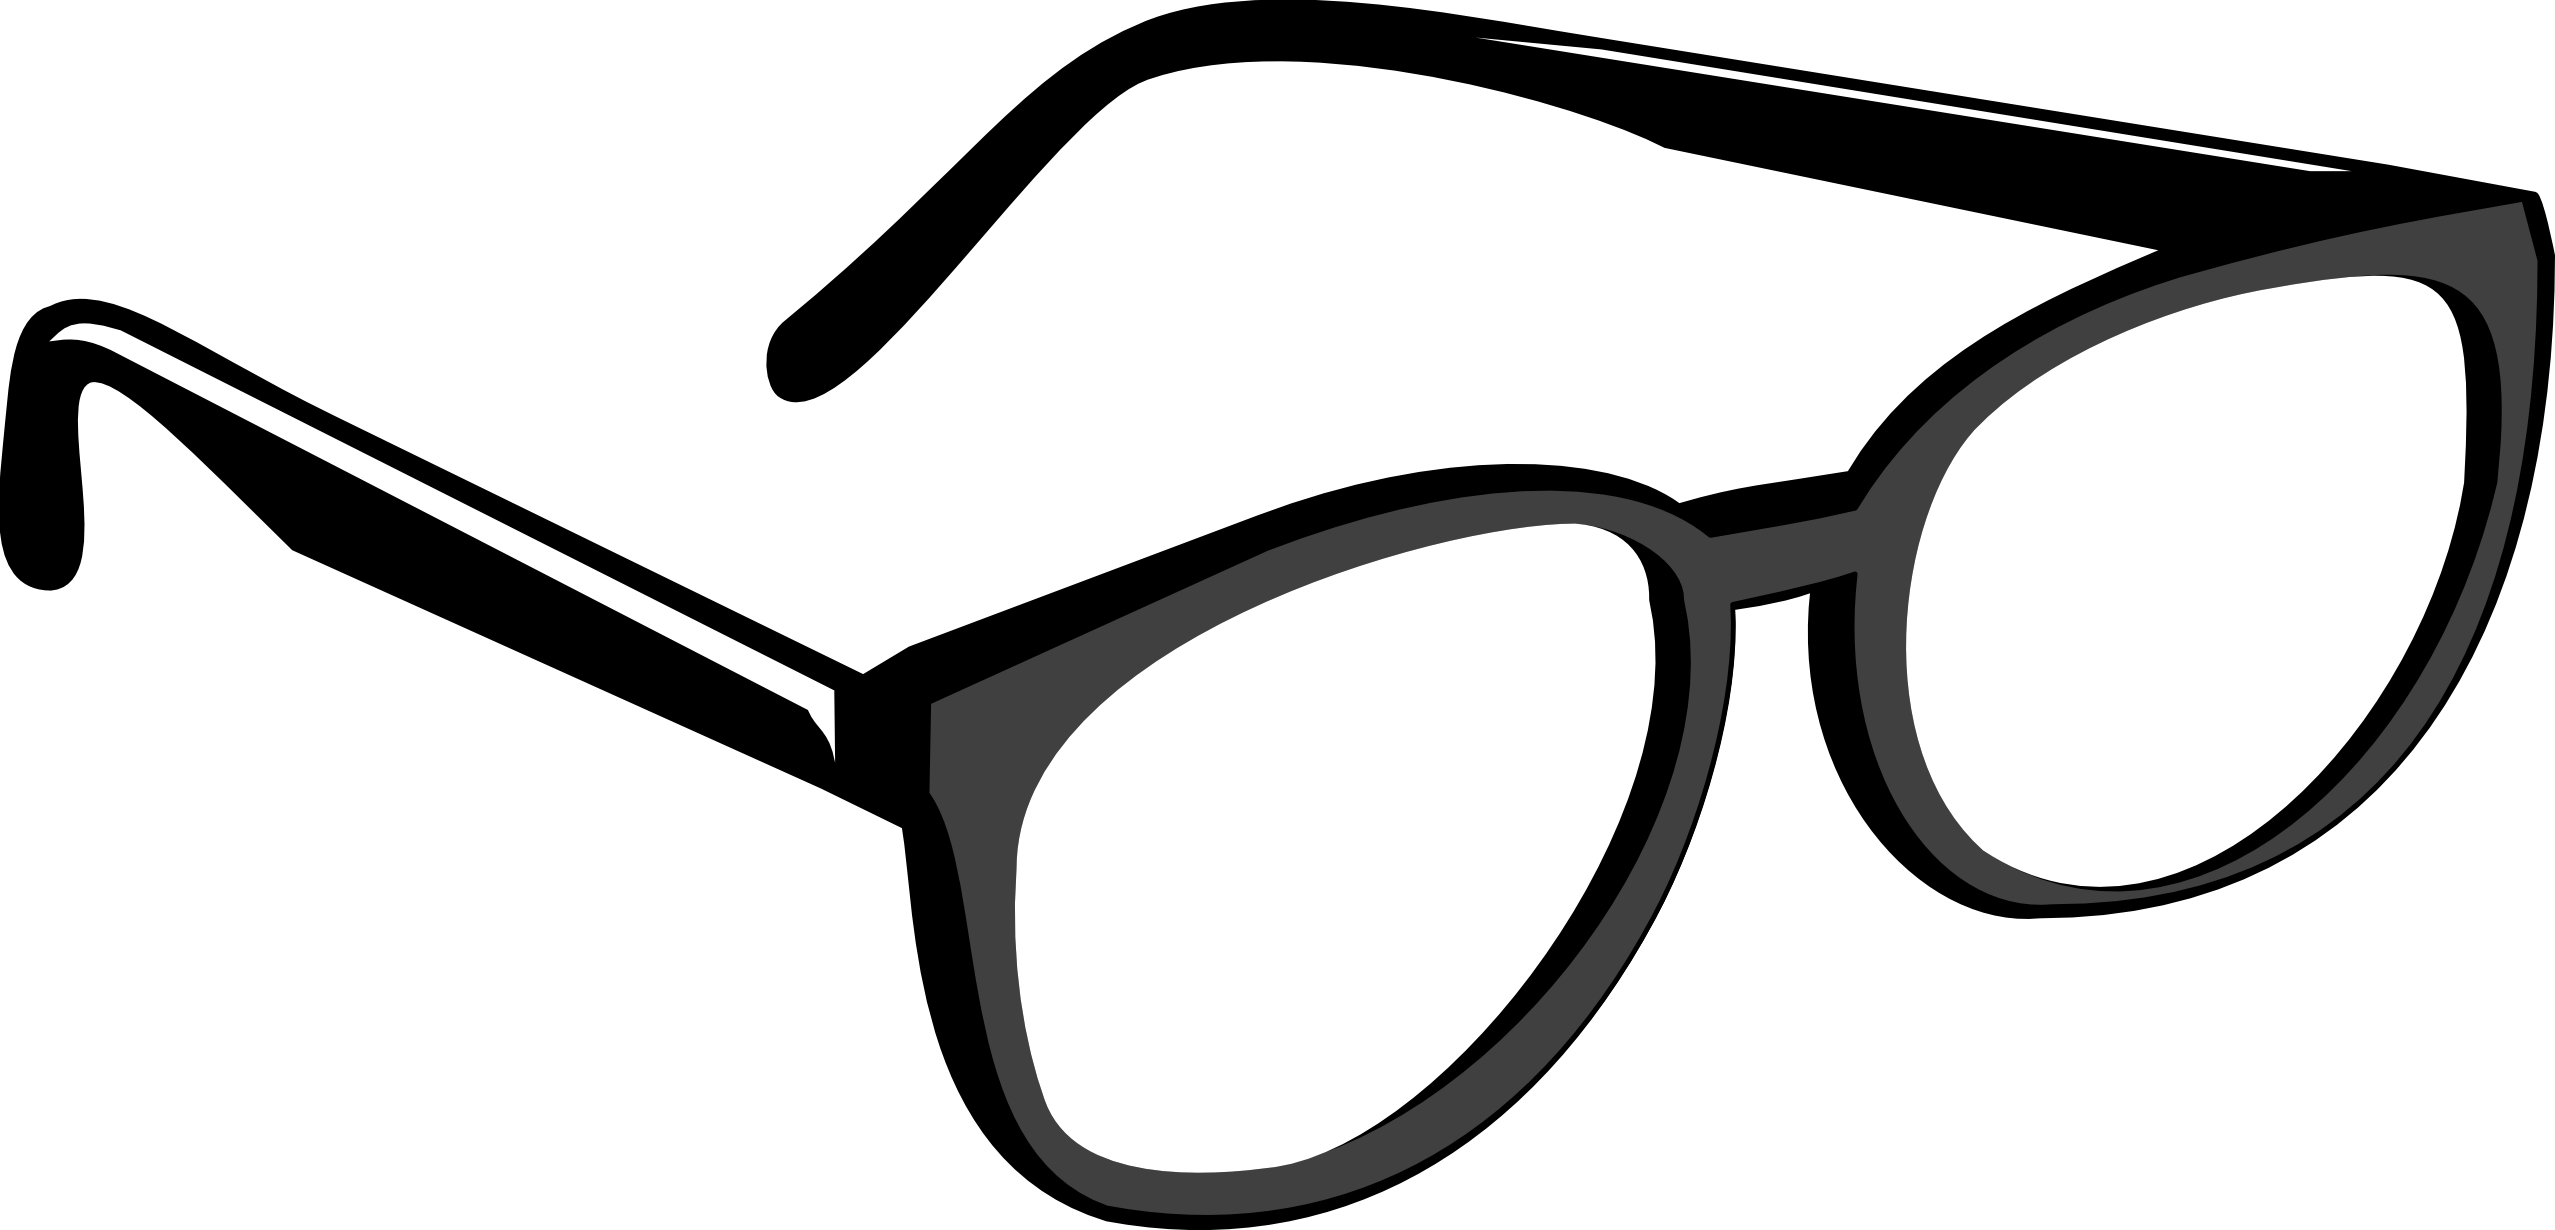 Free Sunglasses Clip Art Free Vector For-Free sunglasses clip art free vector for free download about 5 - Clipartix-4